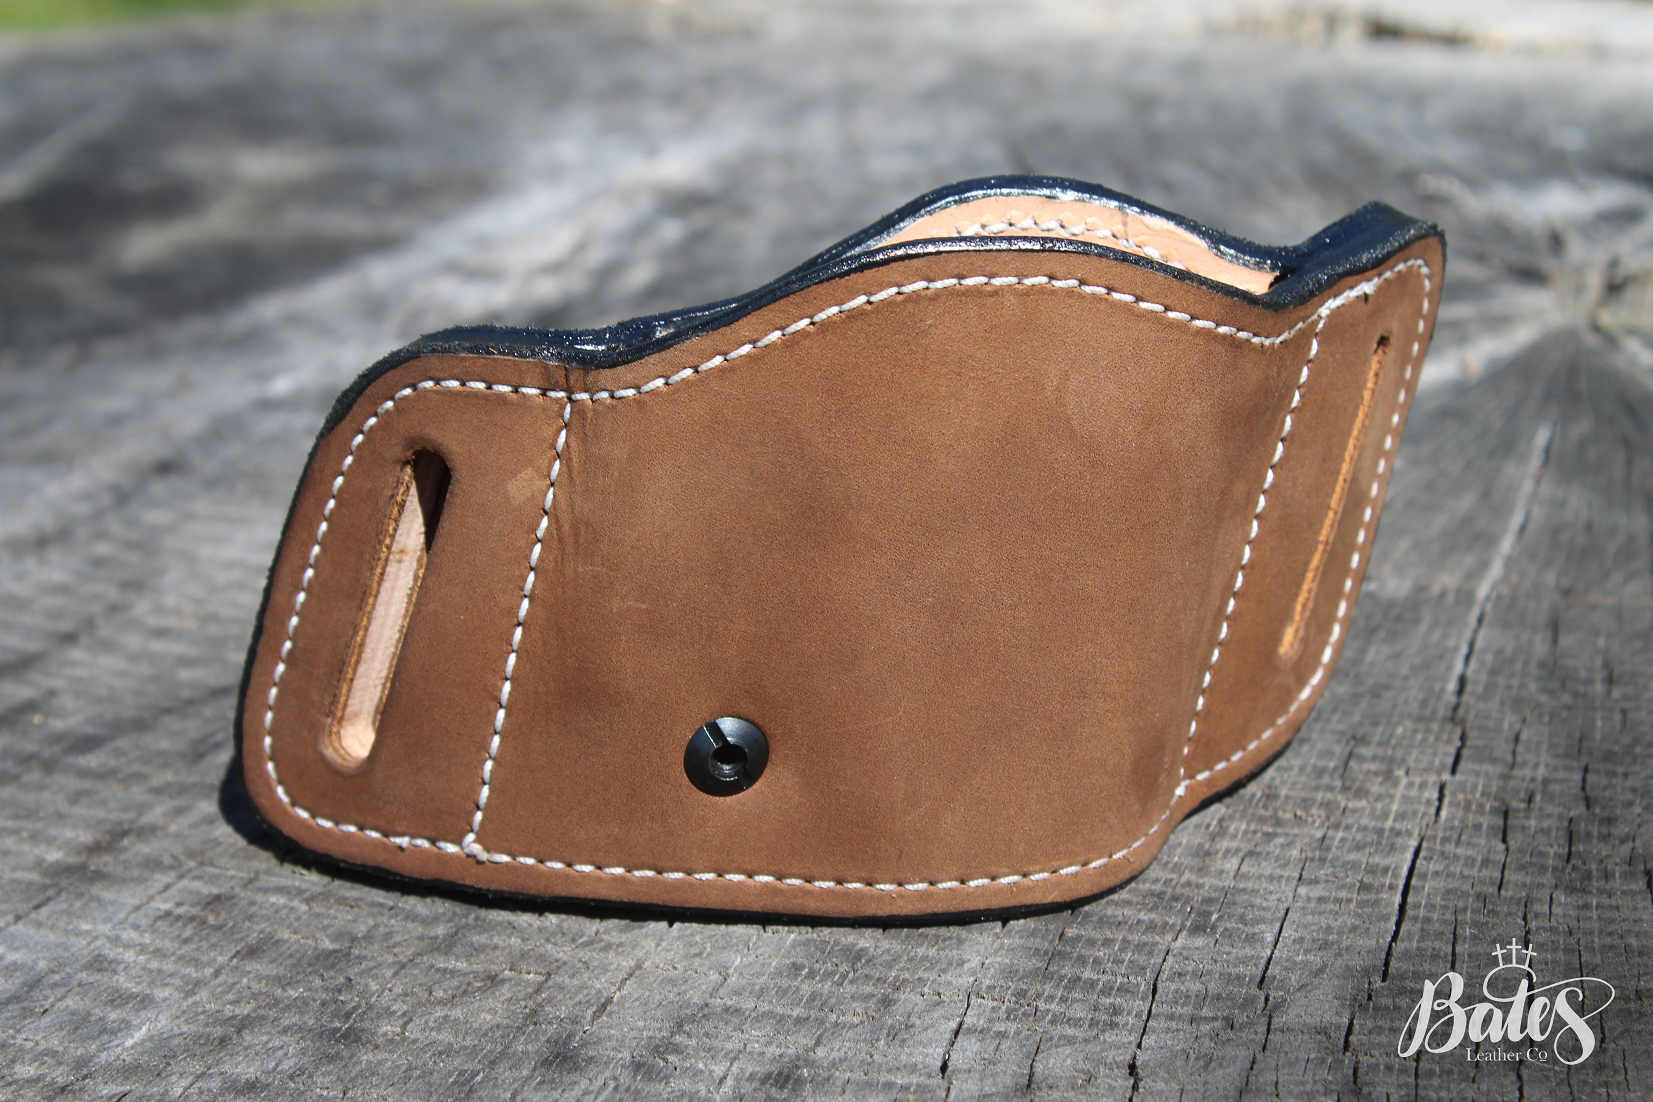 Take a look at our Glock 19 side holster! You can buy yours at https://www.batesleatherco.com/product-page/side-holster